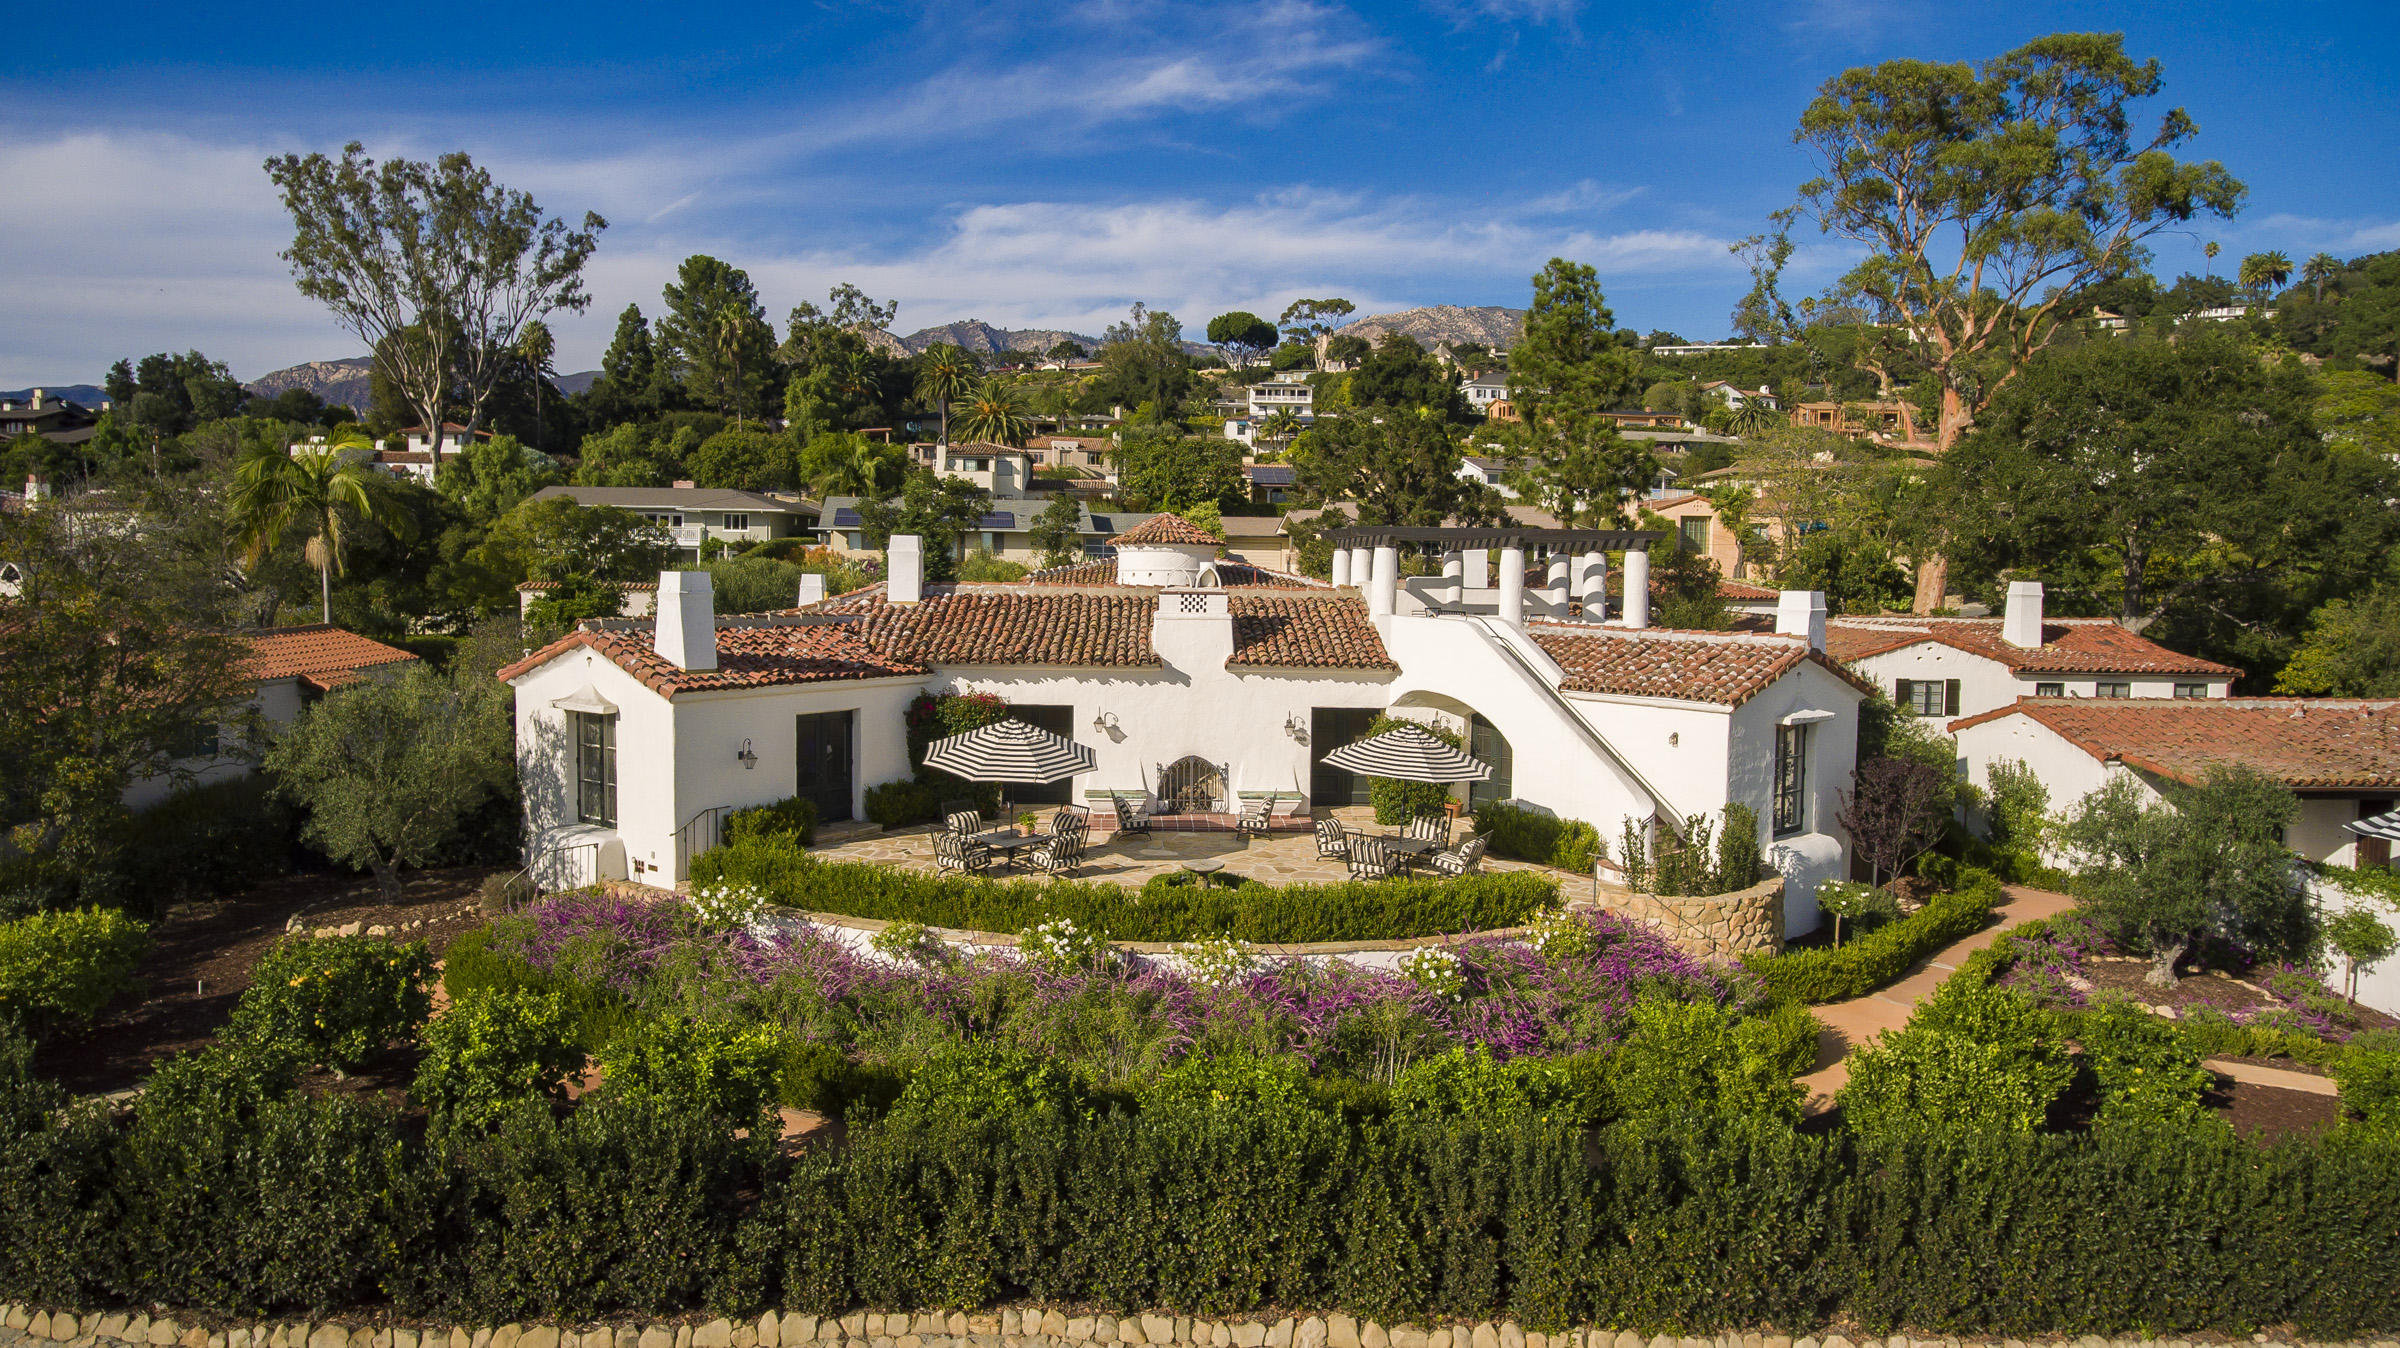 Property photo for 1800 El Encanto Rd Santa Barbara, California 93103 - 16-3564